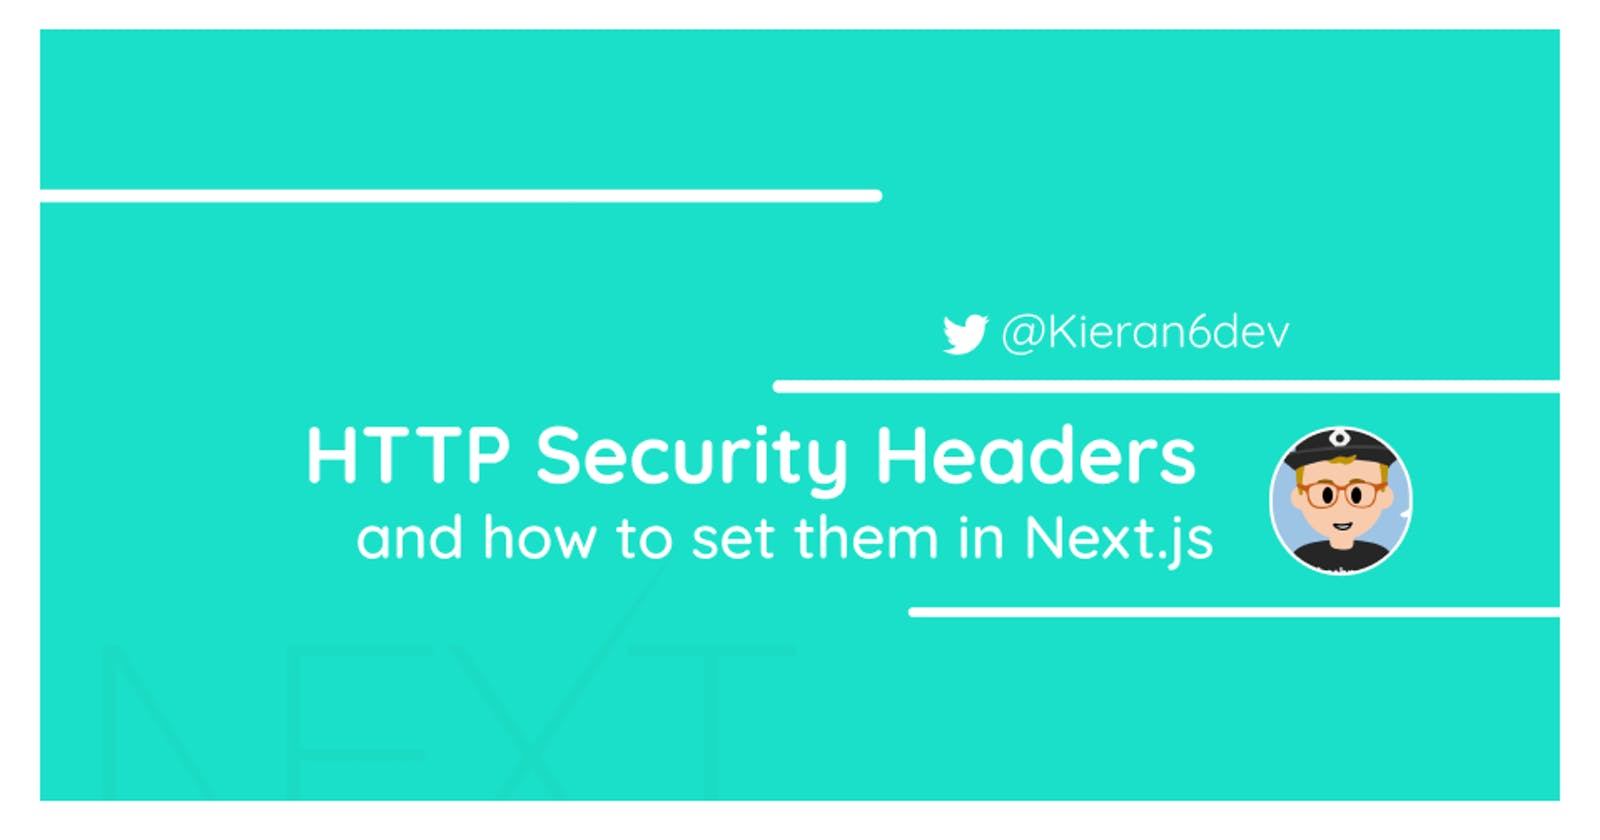 HTTP Security Headers and how to set them in Next.js